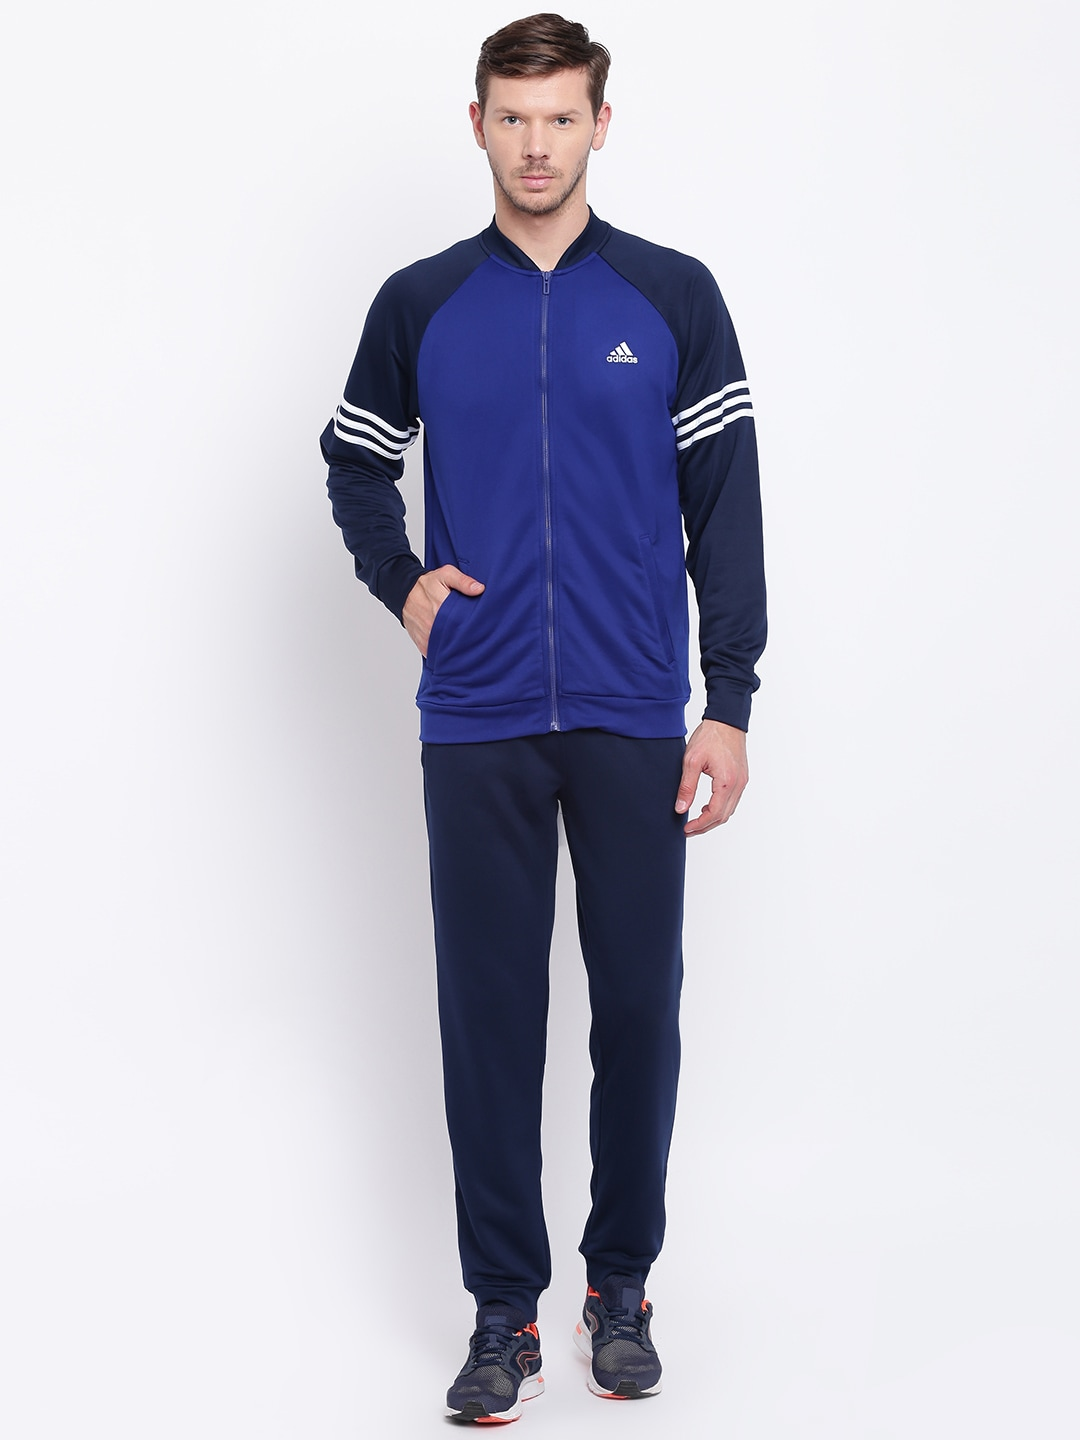 21dc94c17 Adidas Tracksuits Socks Bags - Buy Adidas Tracksuits Socks Bags online in  India